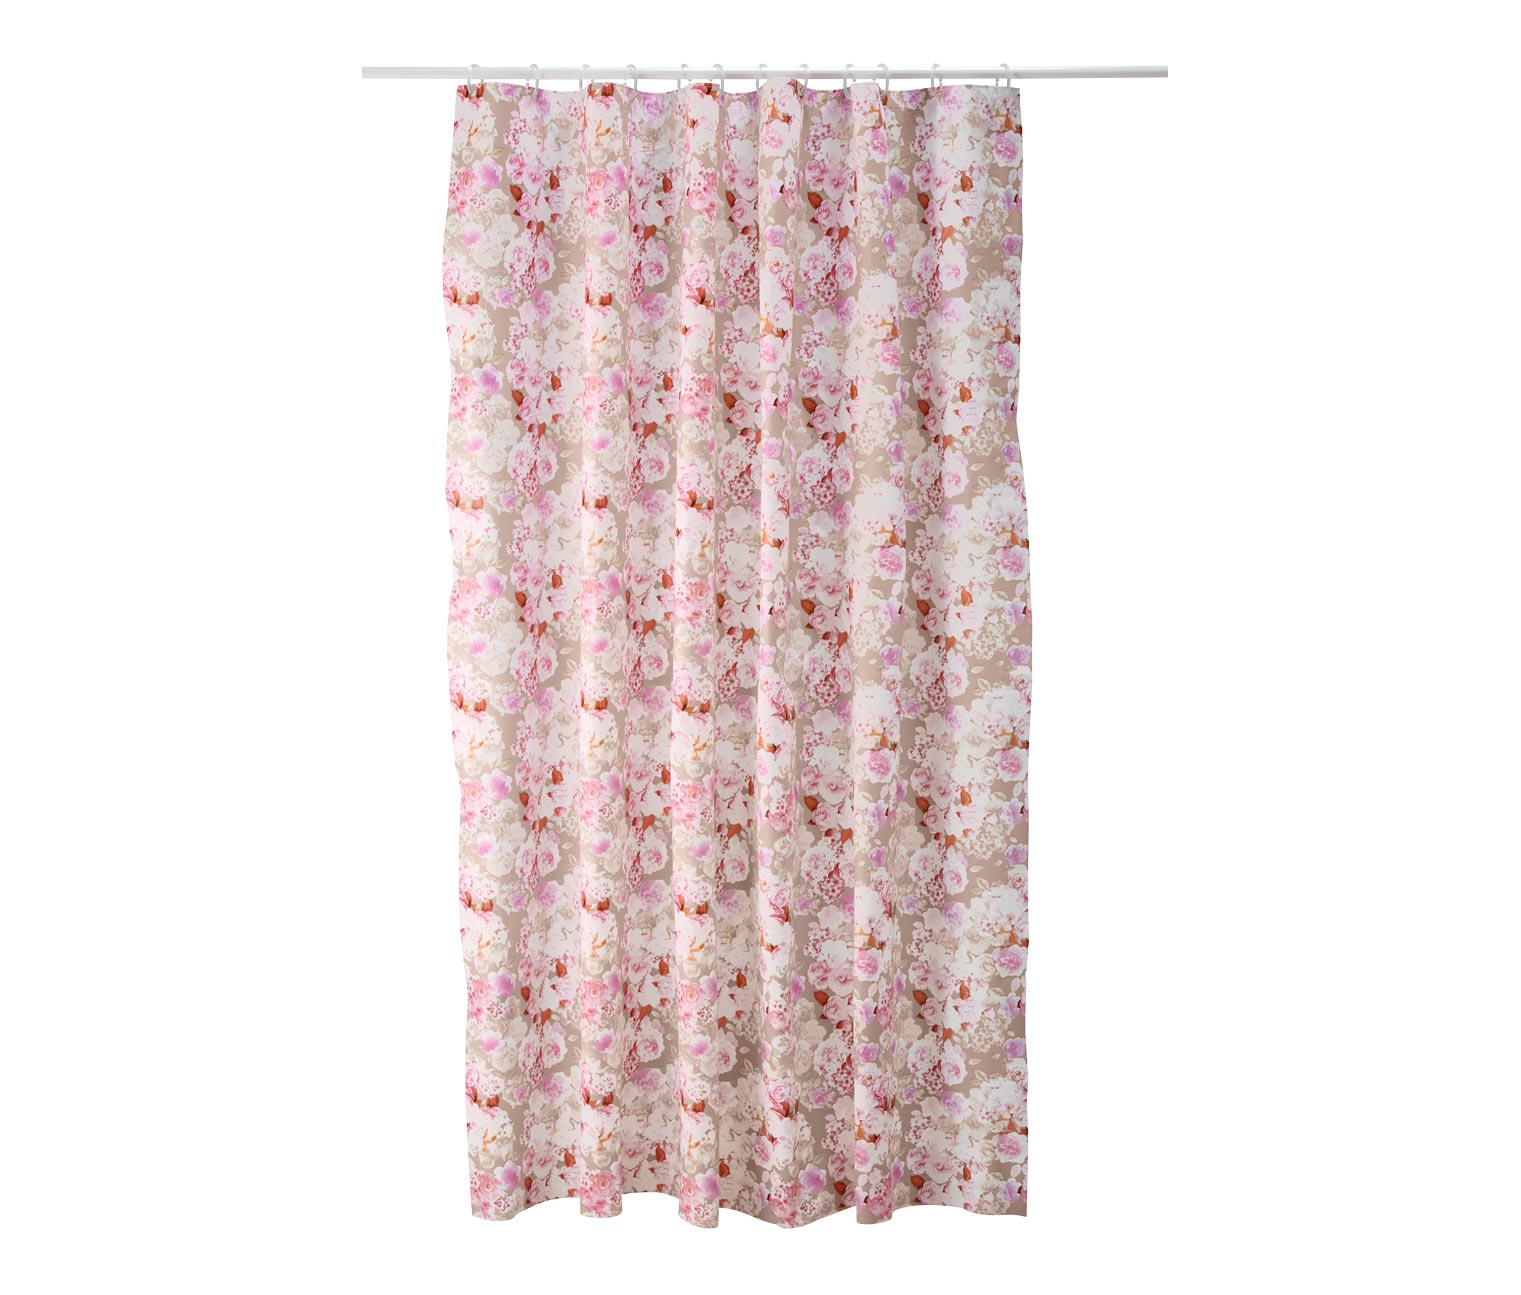 Shower Curtain, 200 x 180 cm, Roses